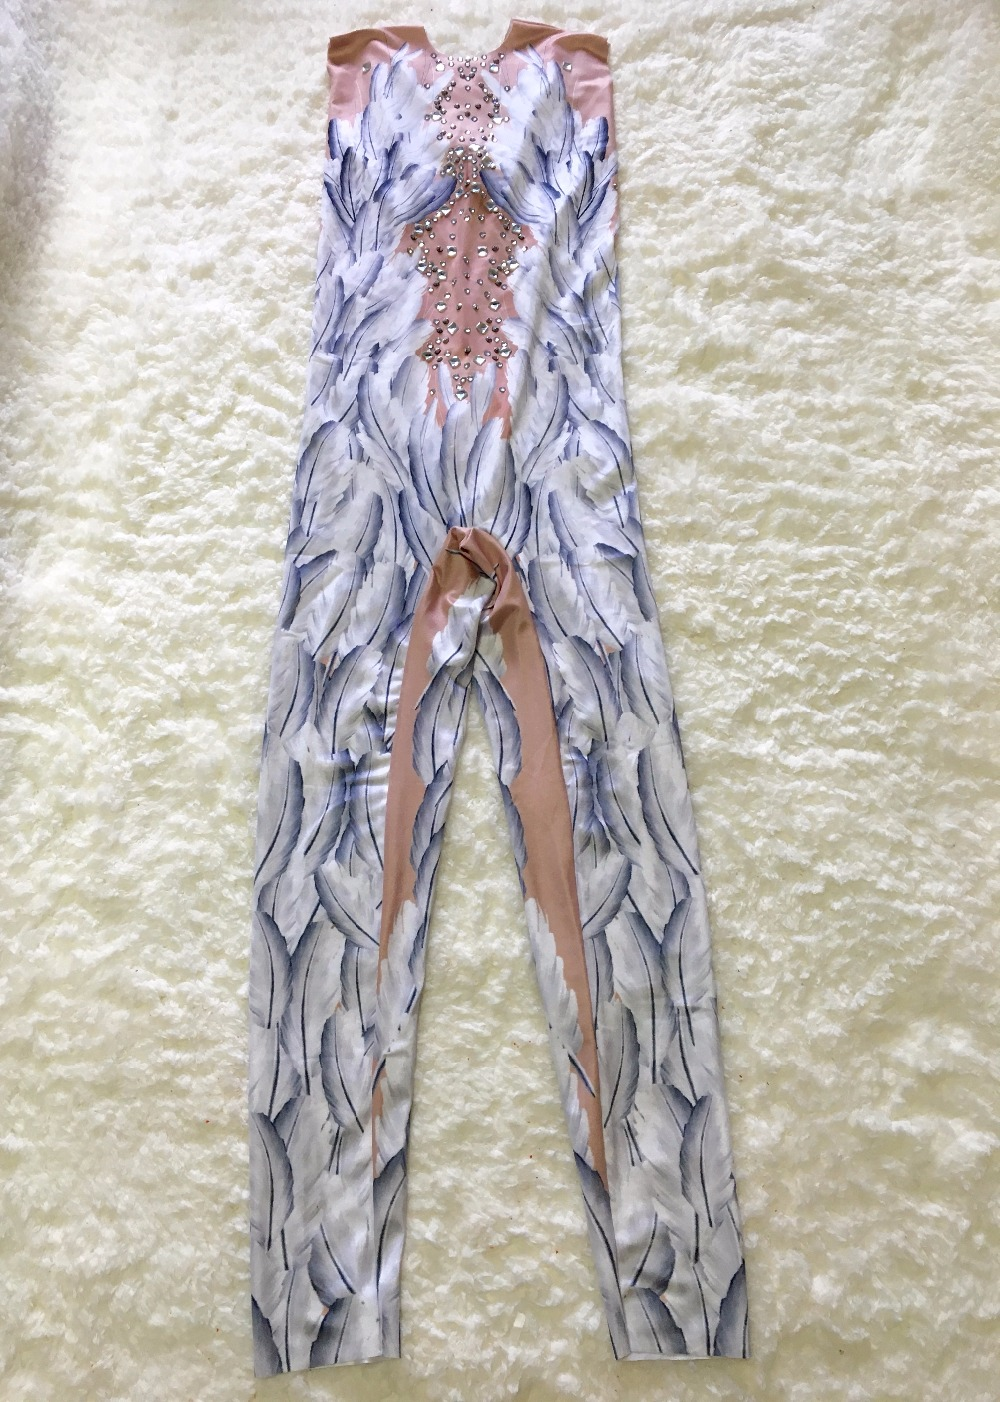 Glisten Rhinestone Feather Printed Jumpsuit Bling Crystals Rompers Sexy Costume Nigjtclub Party Show Celebrate Outfit Stage Wear